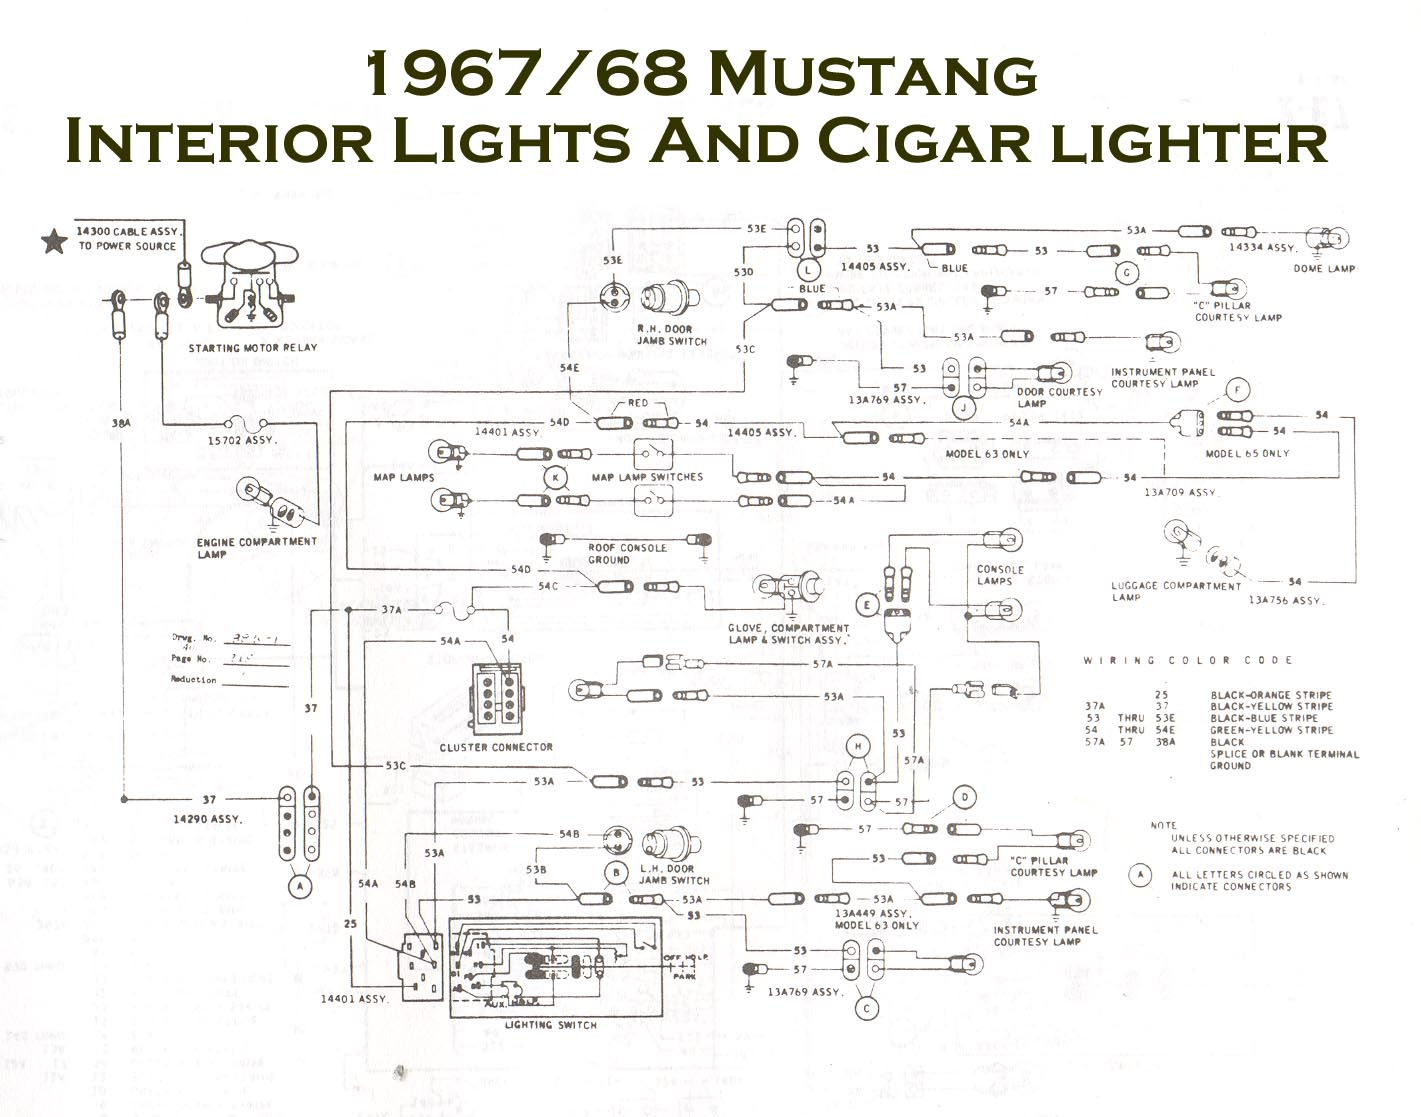 1967 68_console_wiring_diagram vintage mustang wiring diagrams 1967 mustang headlight switch wiring diagram at bayanpartner.co